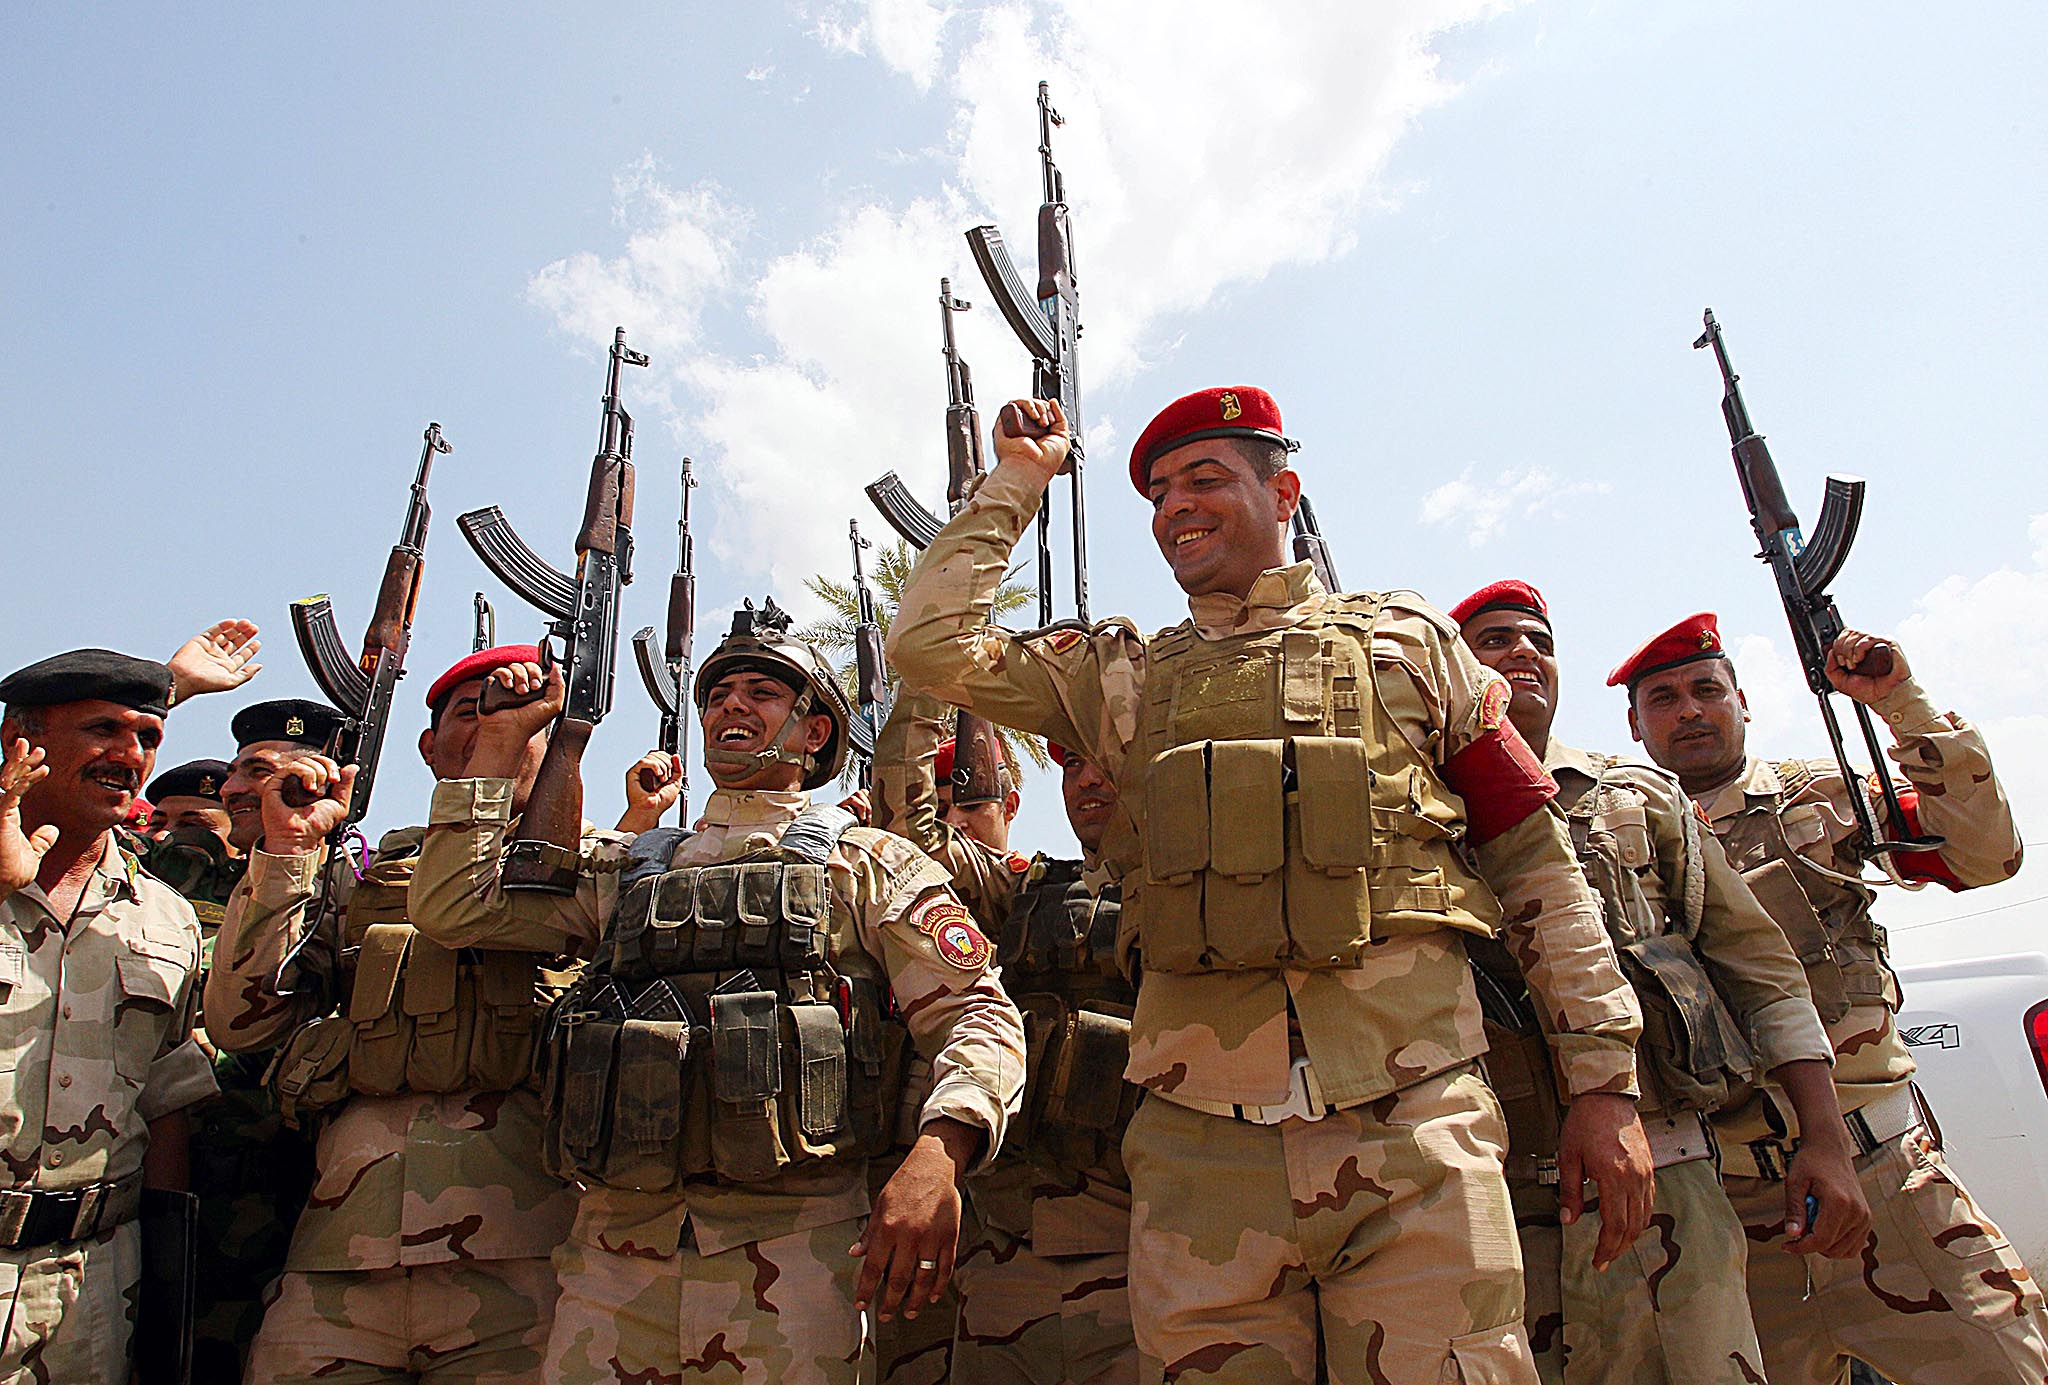 Iraqi army troops chant slogans against the Islamic State of Iraq and the Levant (ISIL)